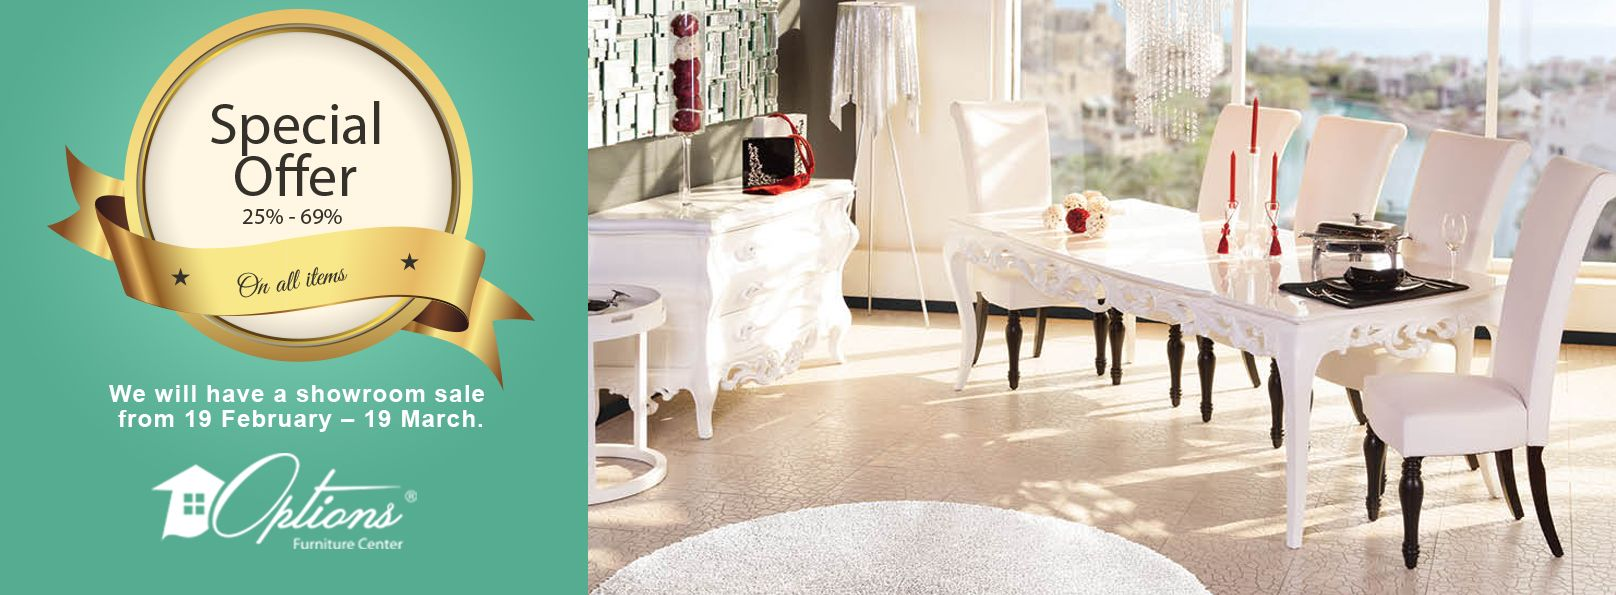 Create your dream home with our trendy furniture Options furniture Center  http   www. Create your dream home with our trendy furniture Options furniture